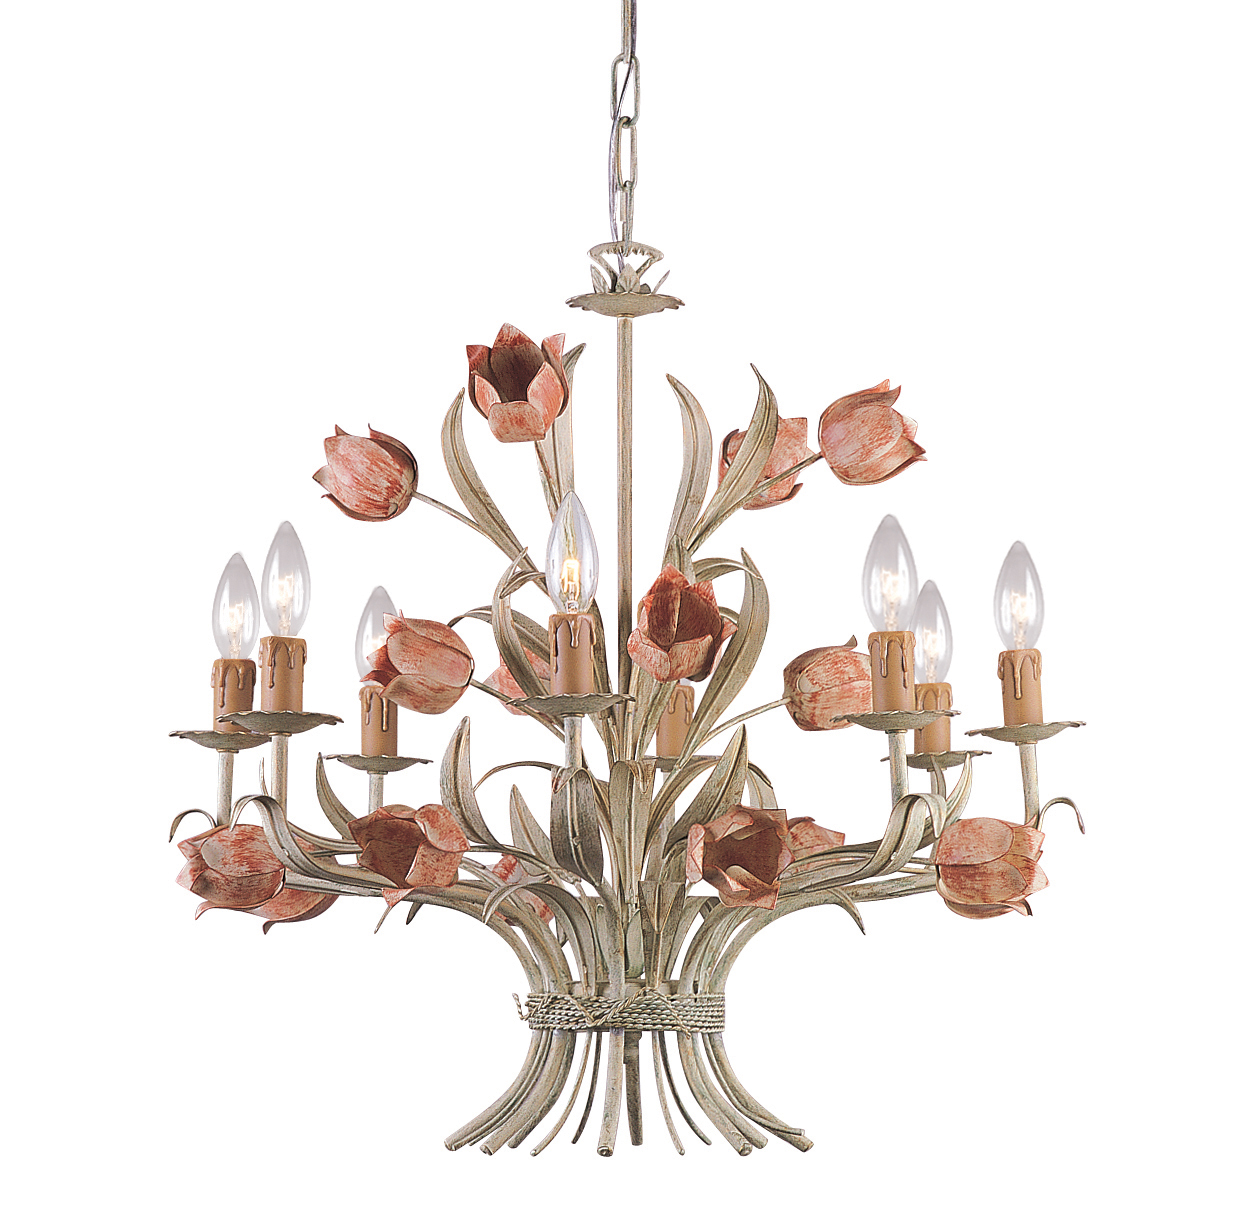 Superior Crystorama Lighting Southport Chandelier Shabby Chic Lighting